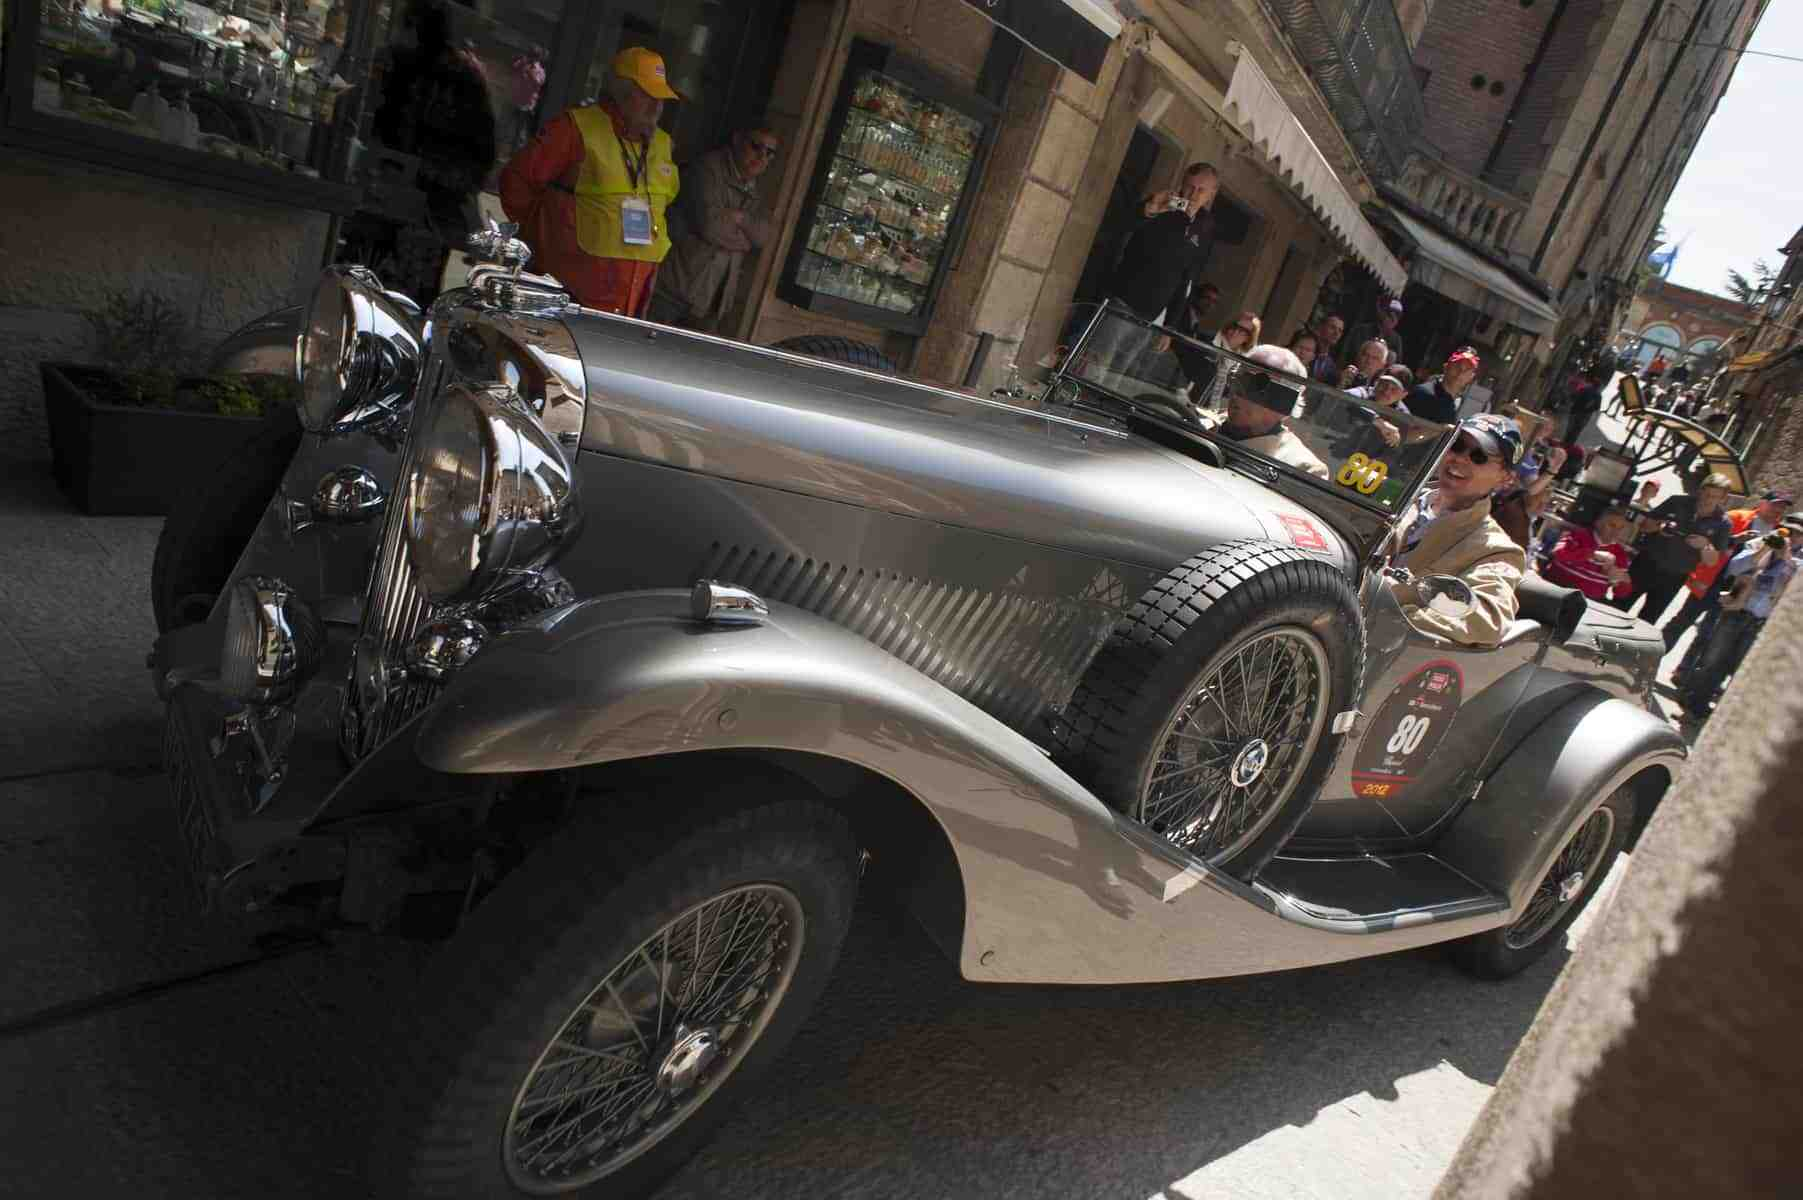 san marino, italy, 18 may 2012, mille miglia rally for historic cars